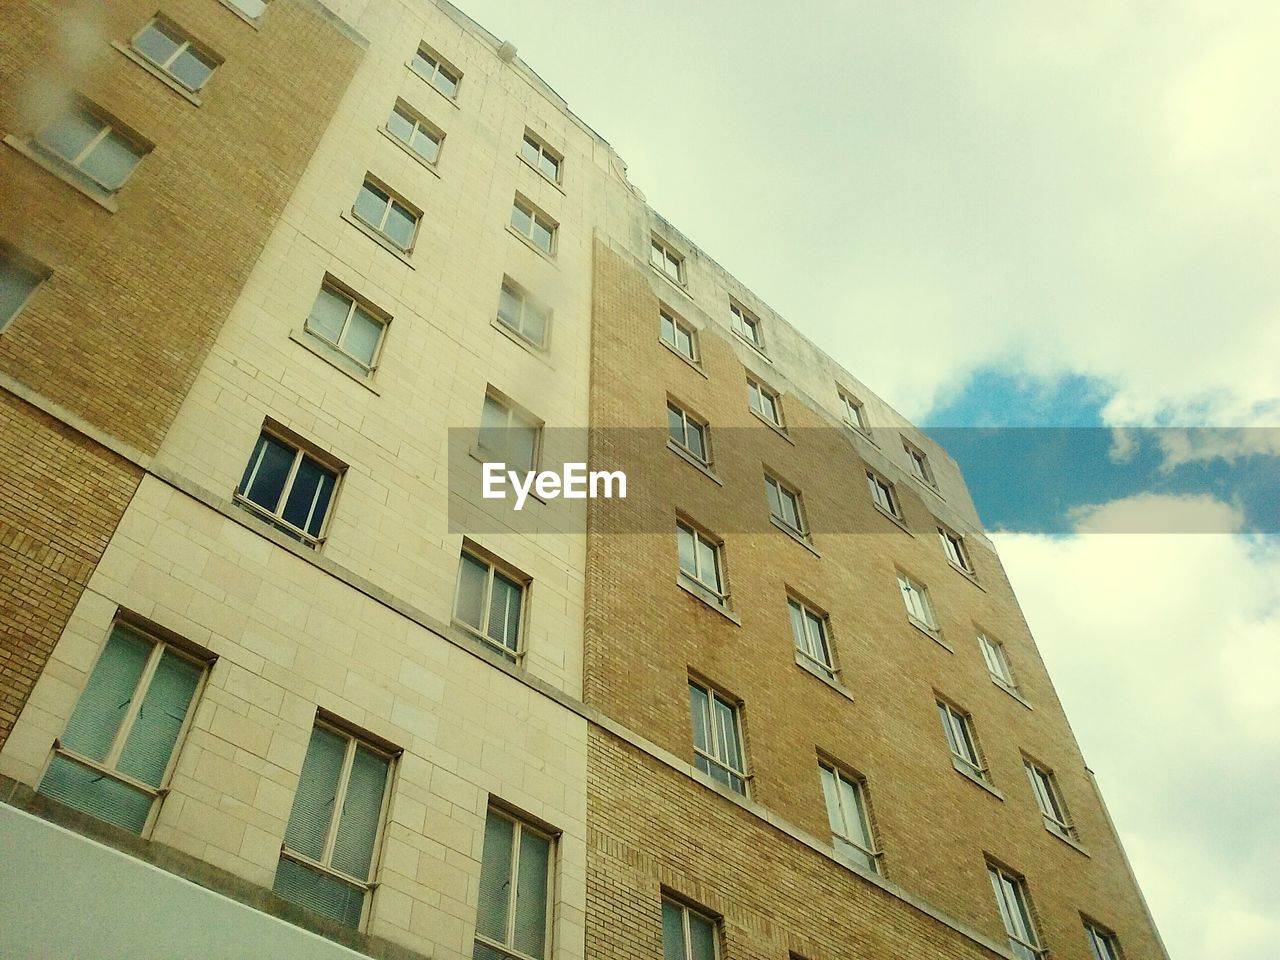 window, architecture, building exterior, built structure, low angle view, sky, no people, day, apartment, city, modern, outdoors, residential